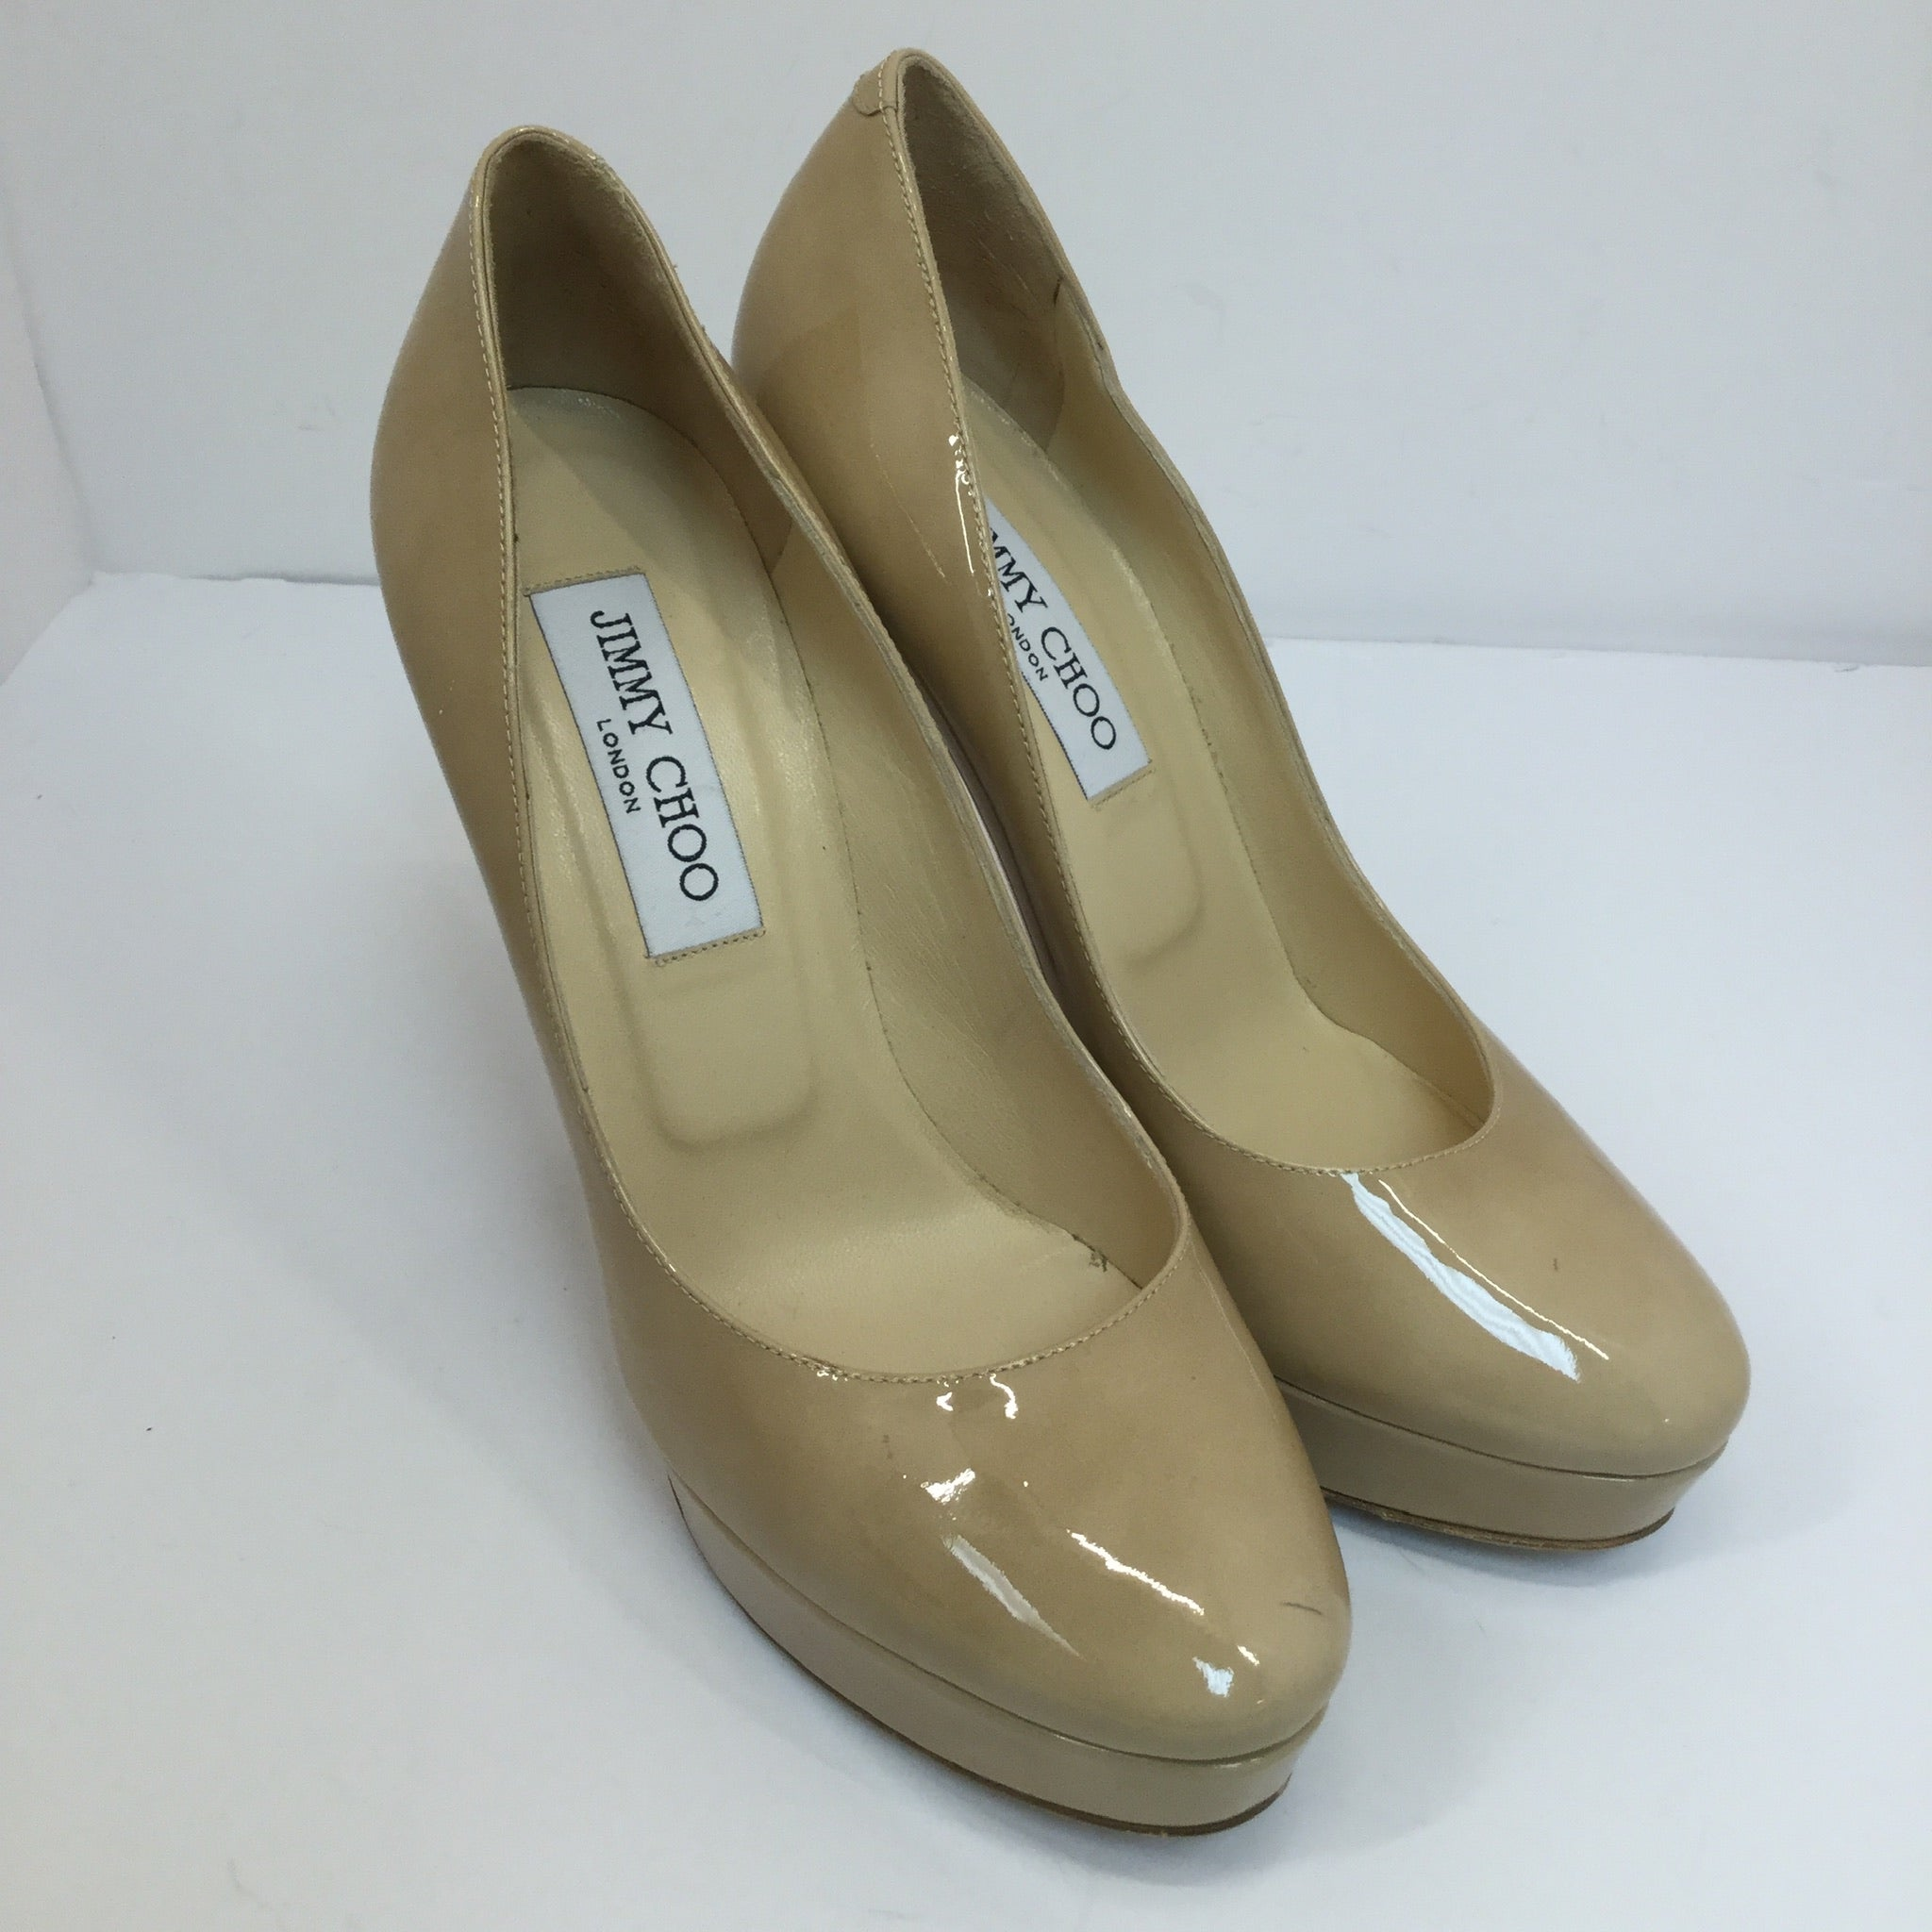 Jimmy Choo Cosmic Patent Leather Pumps - size 37